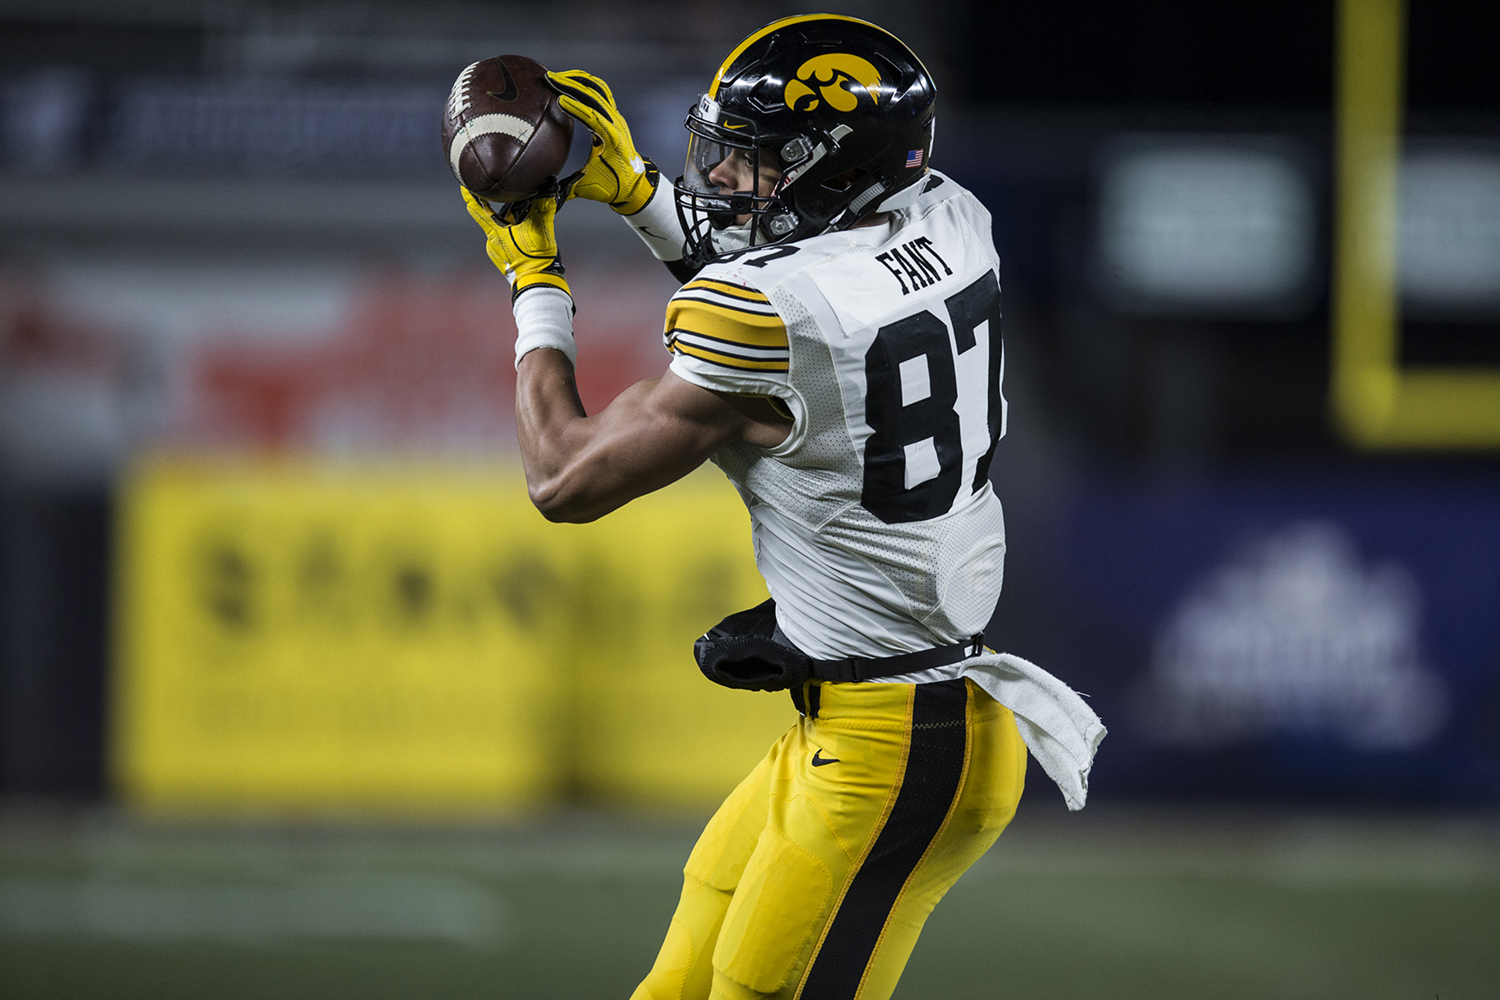 Iowa tight end Noah Fant (87) catches a touchdown pass during the New Era Pinstripe Bowl at Yankee Stadium in New York on Wednesday, Dec. 27. The Hawkeyes went on to win 27-20.